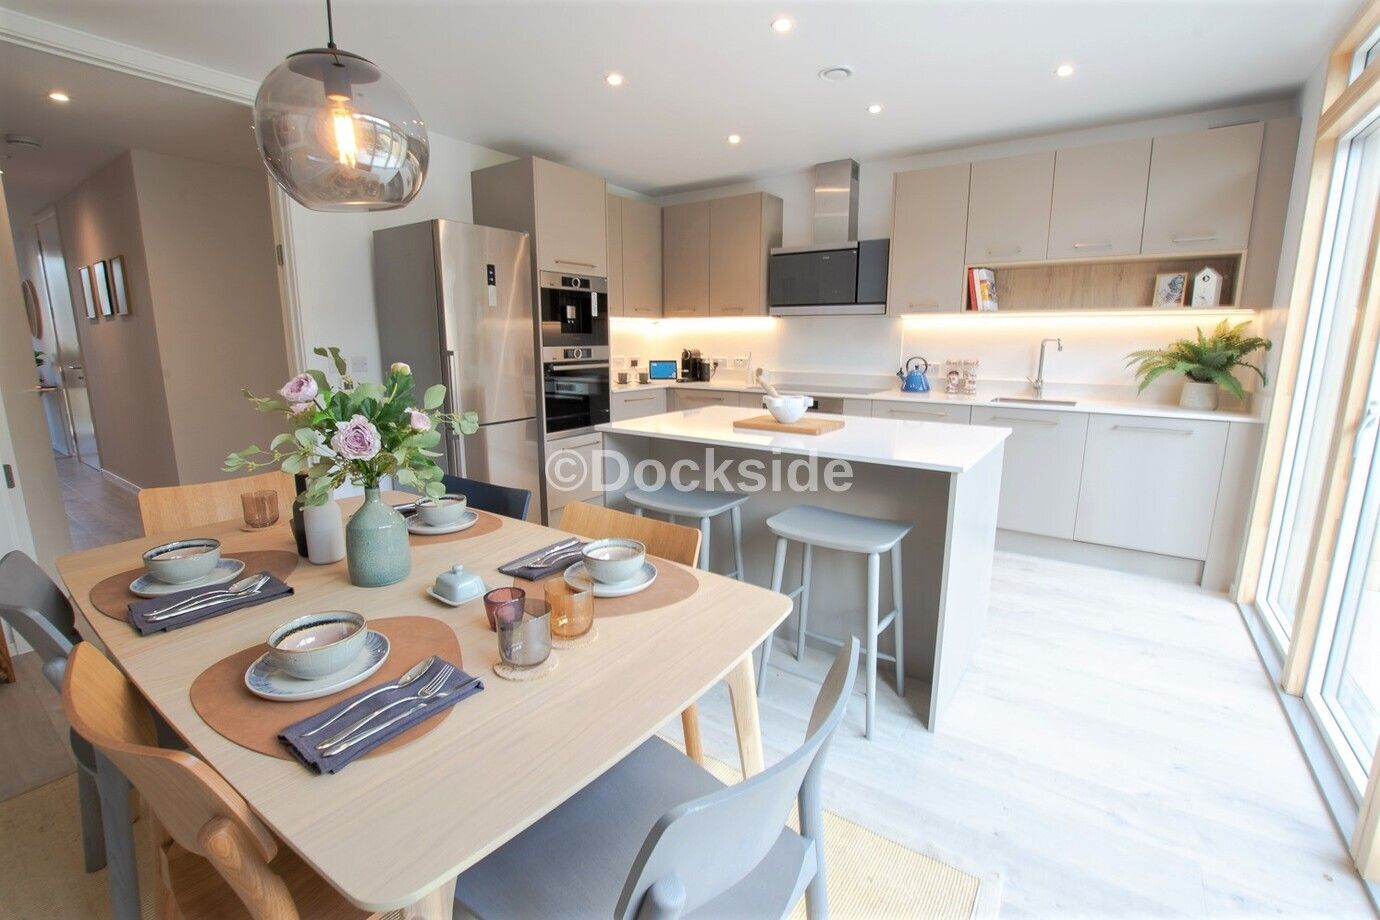 5 bed house for sale in Dock Road - Property Image 1